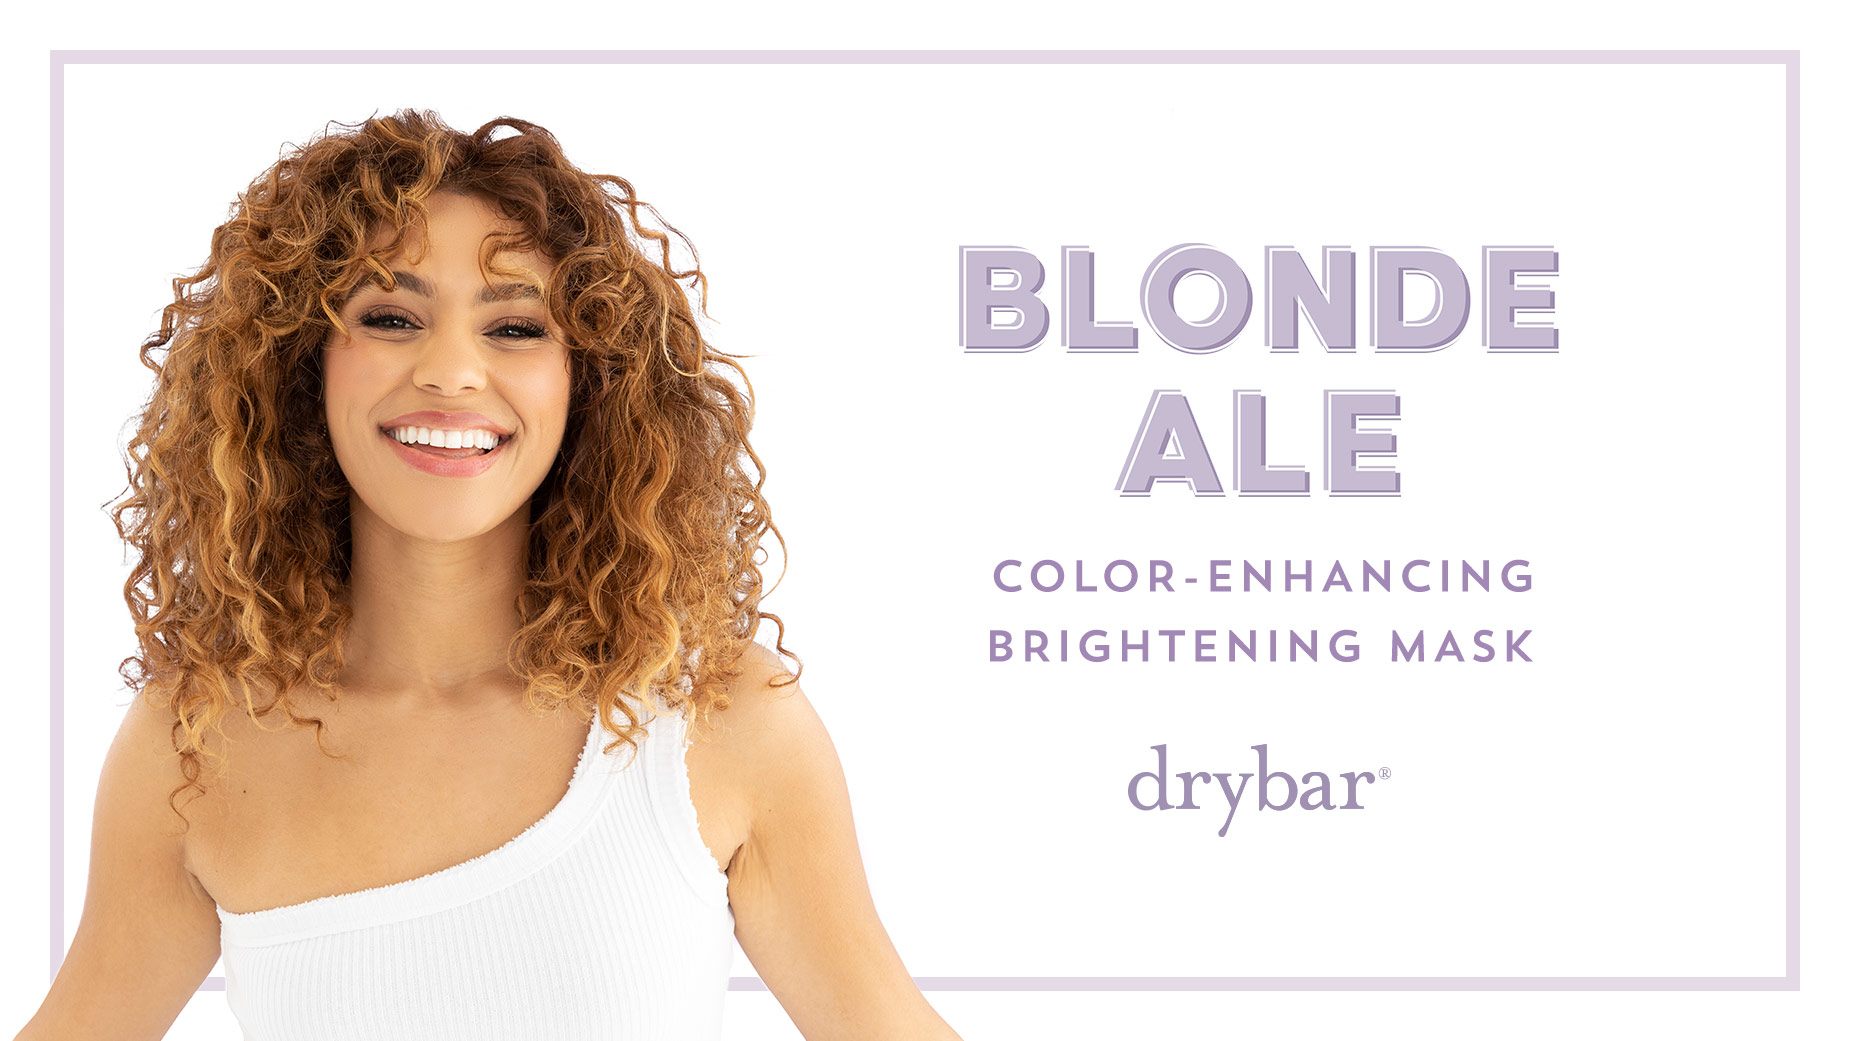 Blonde Ale Vibrance-Boosting Brightening Mask Video